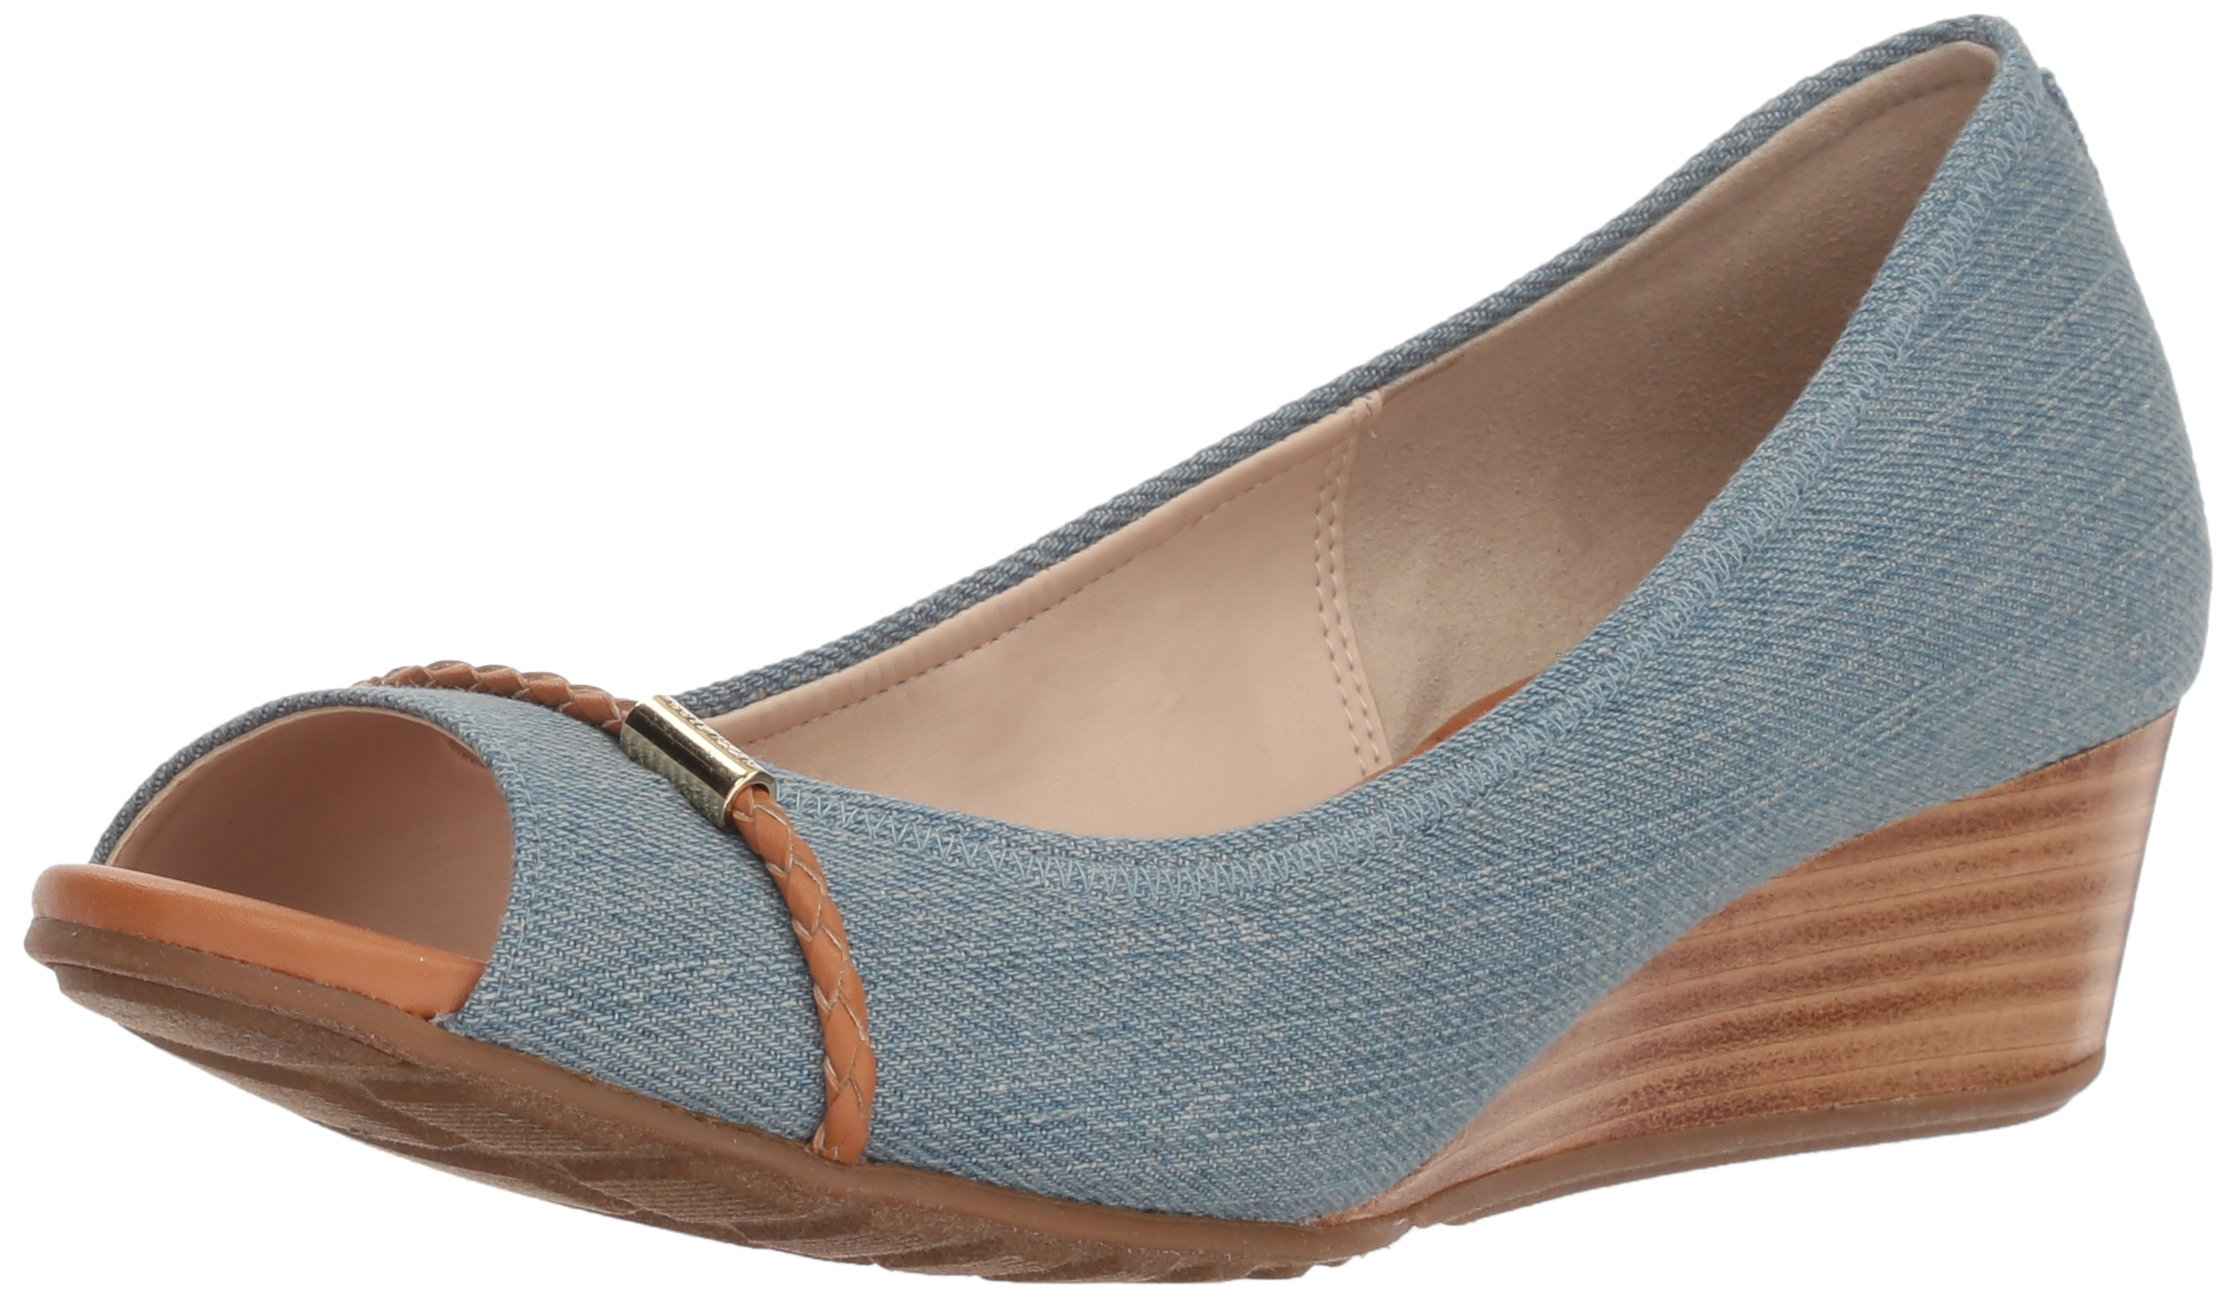 Cole Haan Women's Emory OT Wedge with Braided Band Pump, Riverside Denim, 6 B US